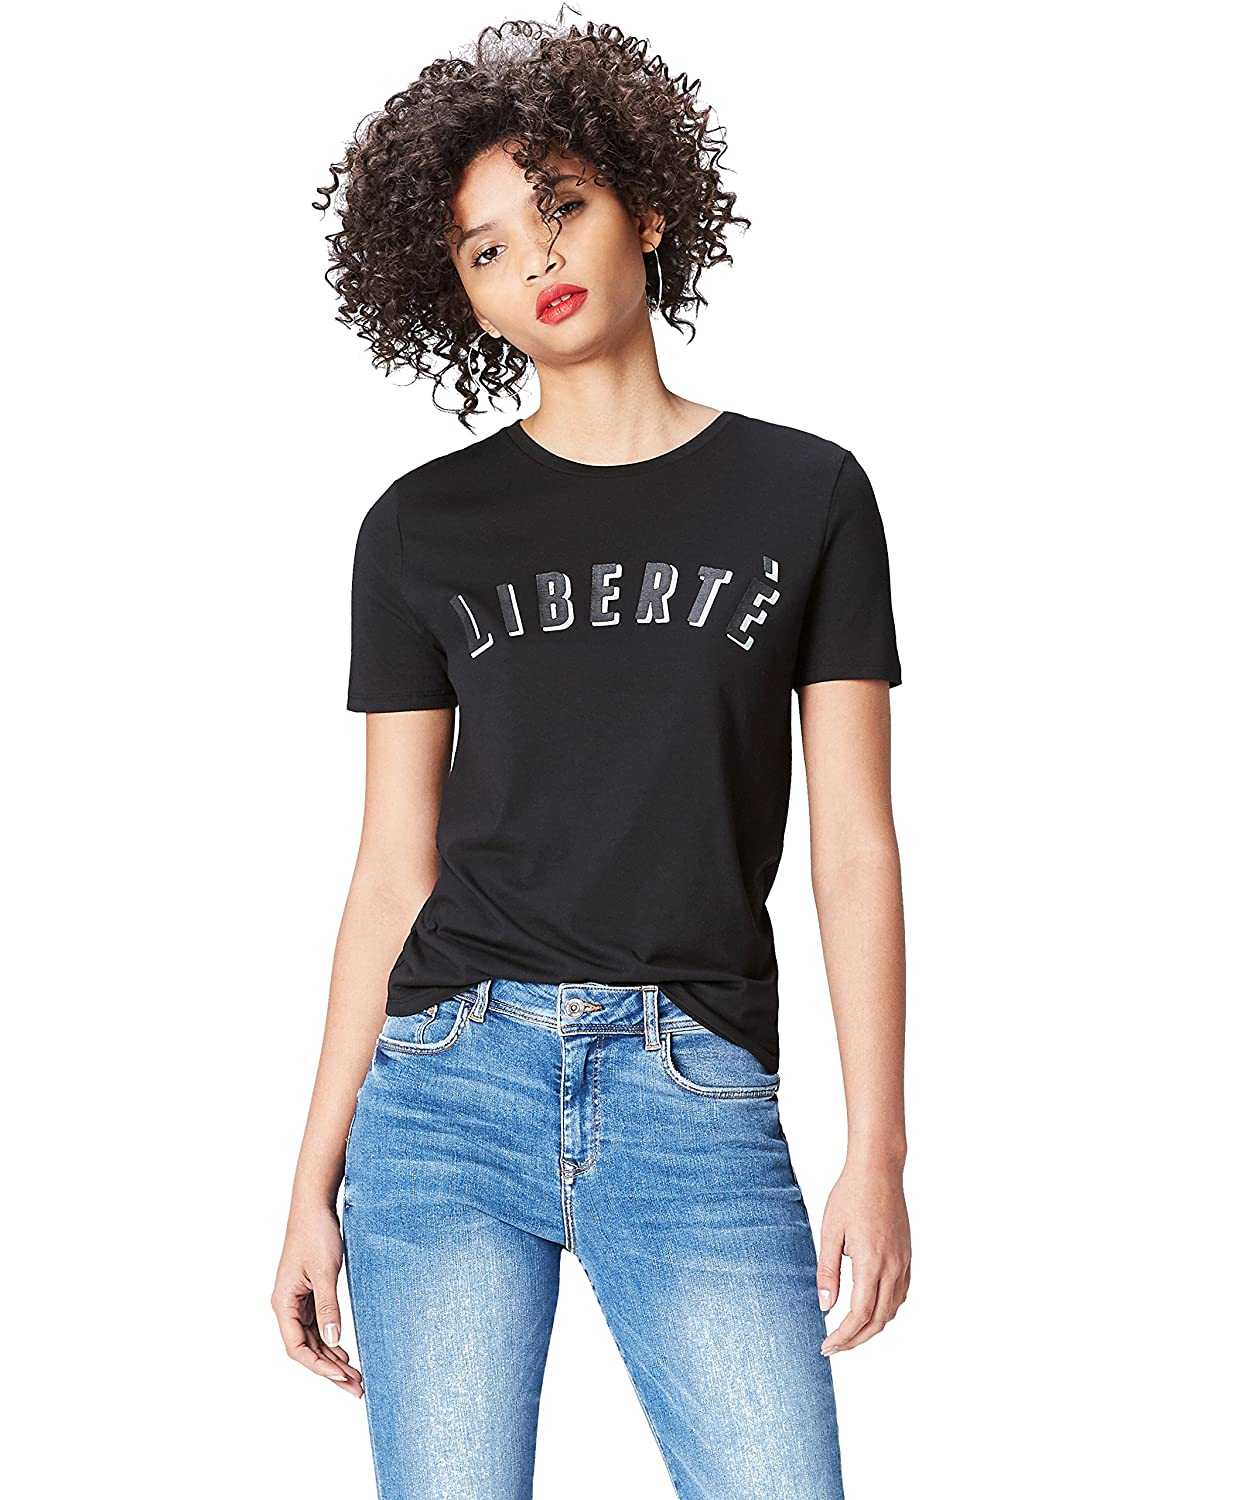 Marchio find T-Shirt Girocollo con Slogan Donna